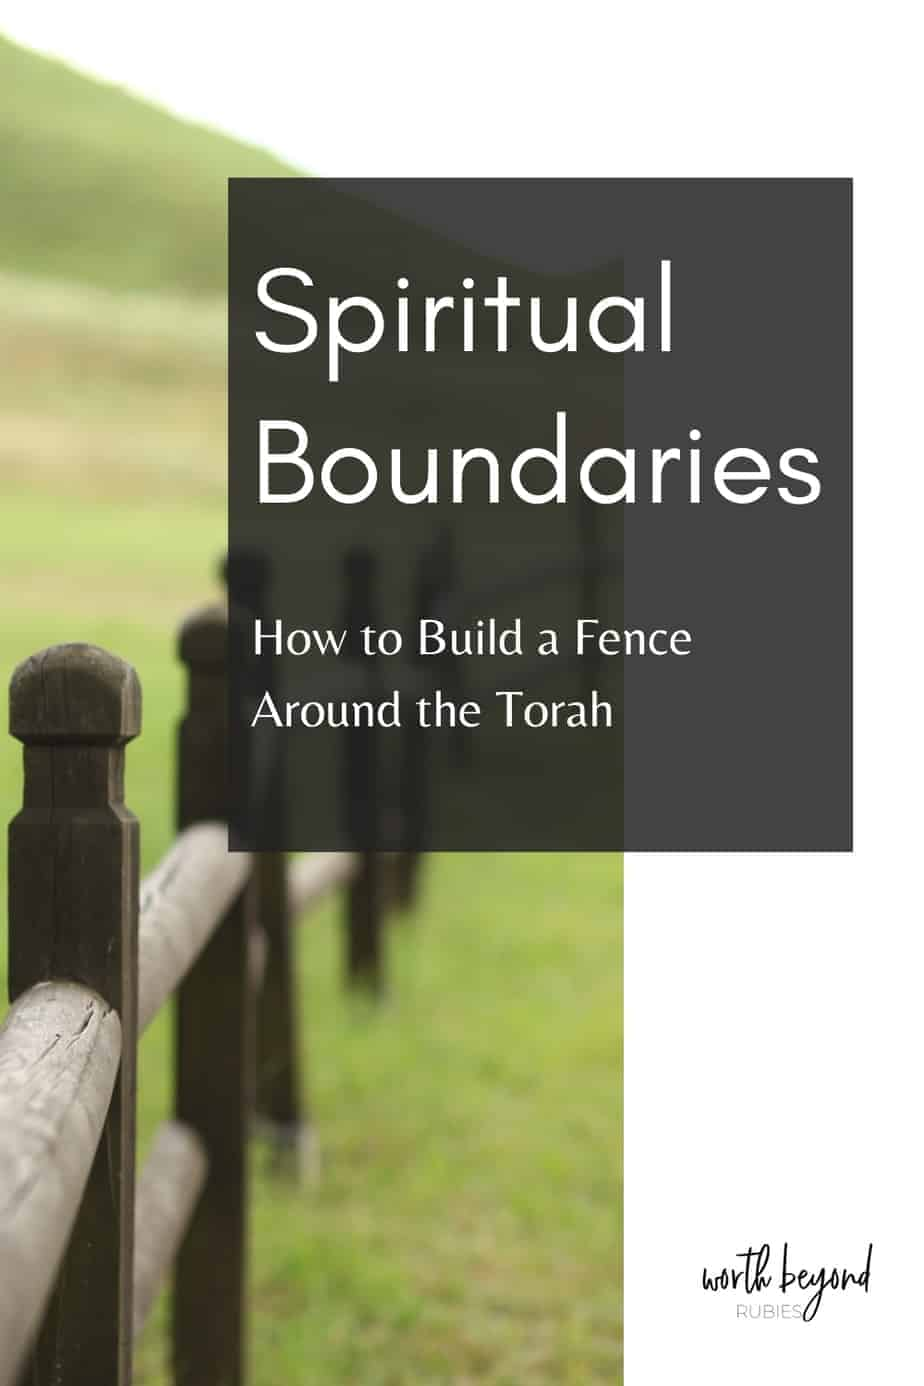 An image of a wooden fence on grass and a text overlay that says Spiritual Boundaries - How to Build a Fence Around the Torah